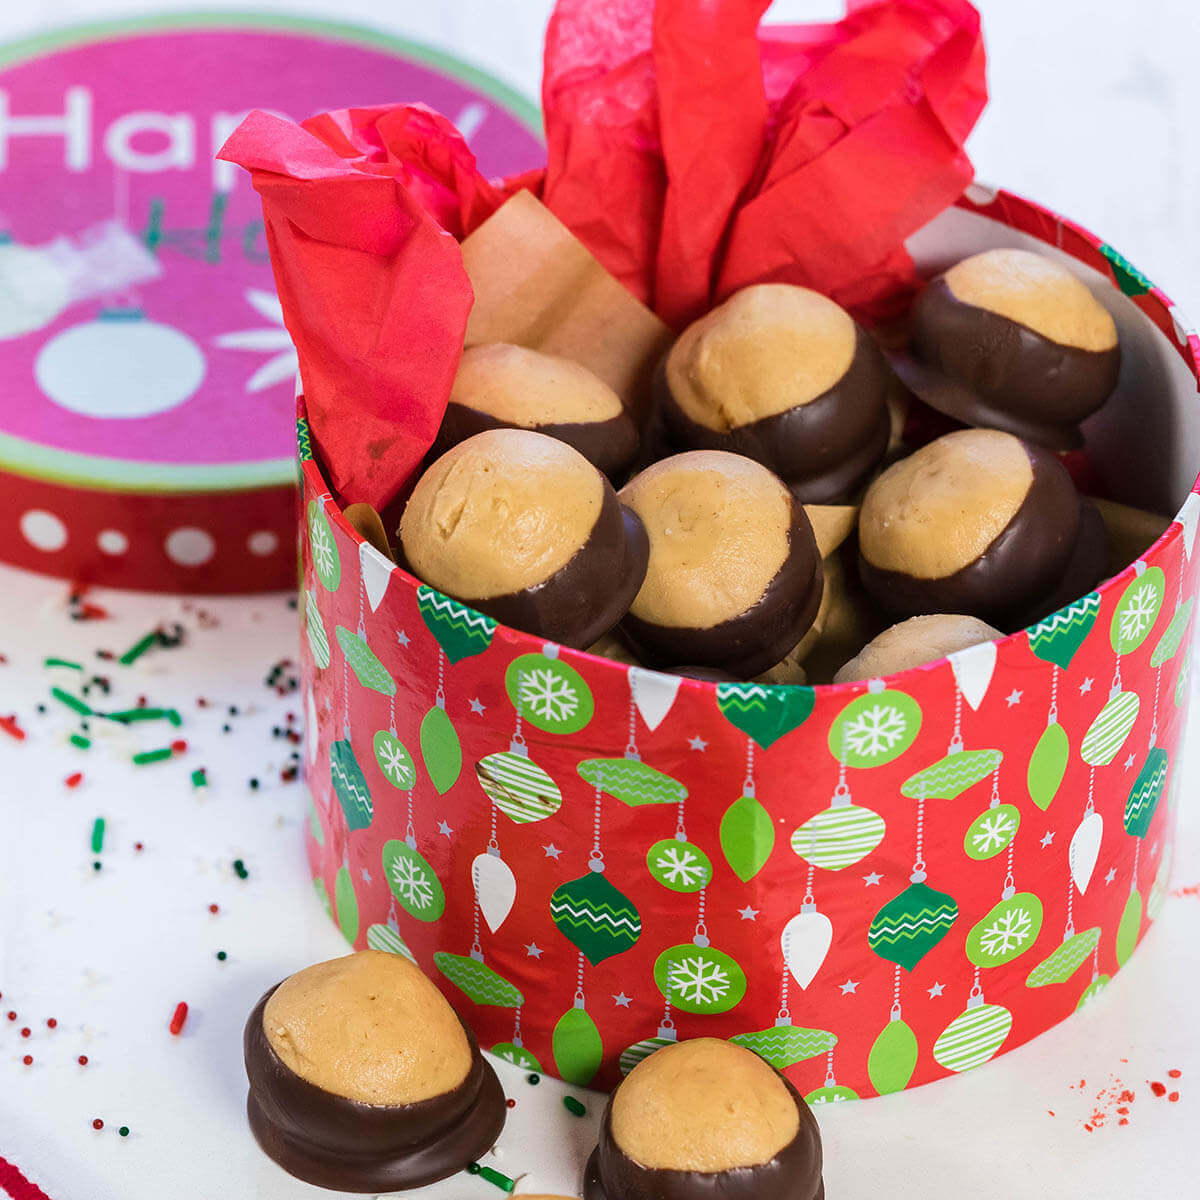 Buckeye candy in a red holiday box.